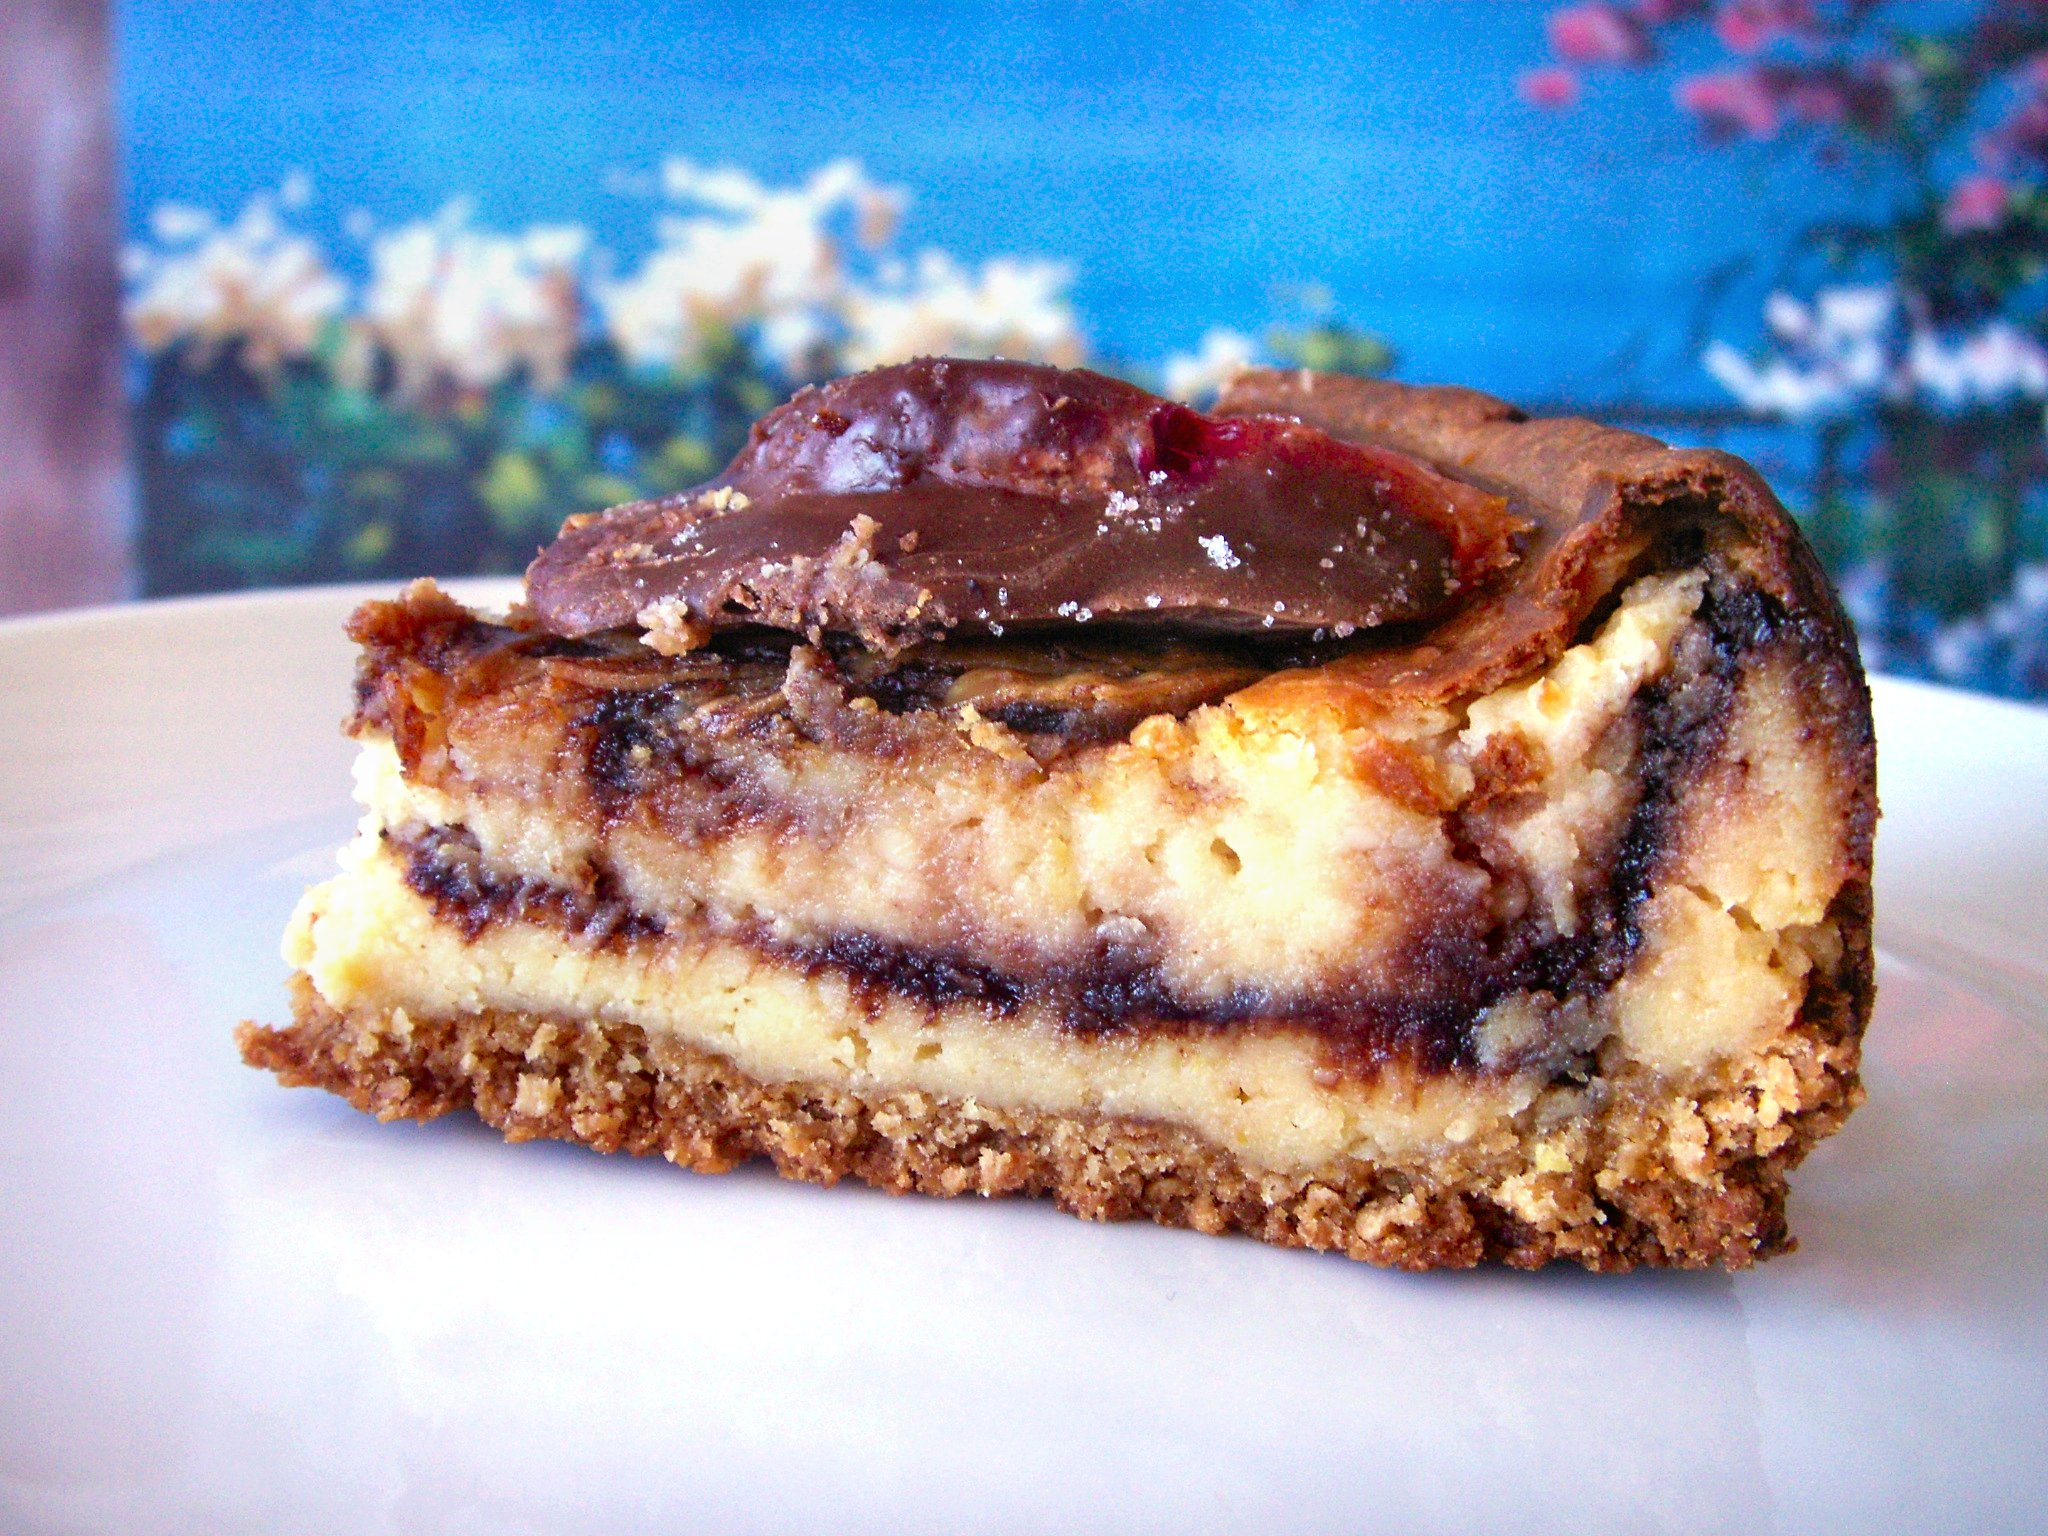 Lemon-Nutella Swirl Cheesecake with Chocolate Blood Oranges